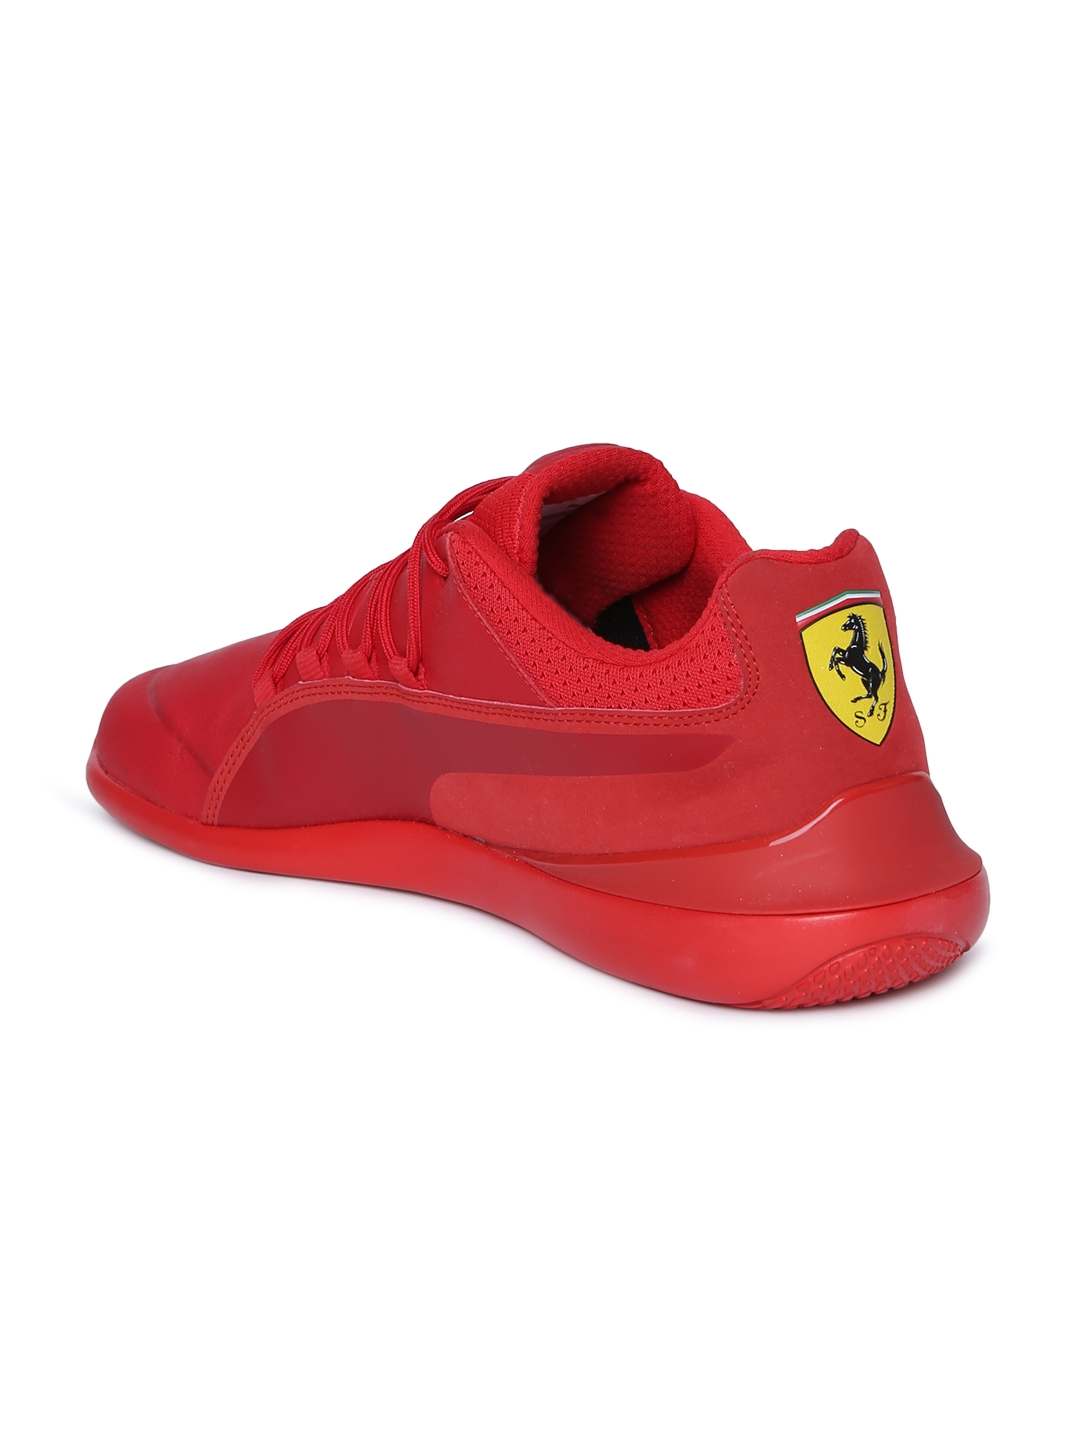 1b8dbe5a8dc4 Buy Puma Men Red SF Evo Cat Sneakers - Casual Shoes for Men 2454406 ...